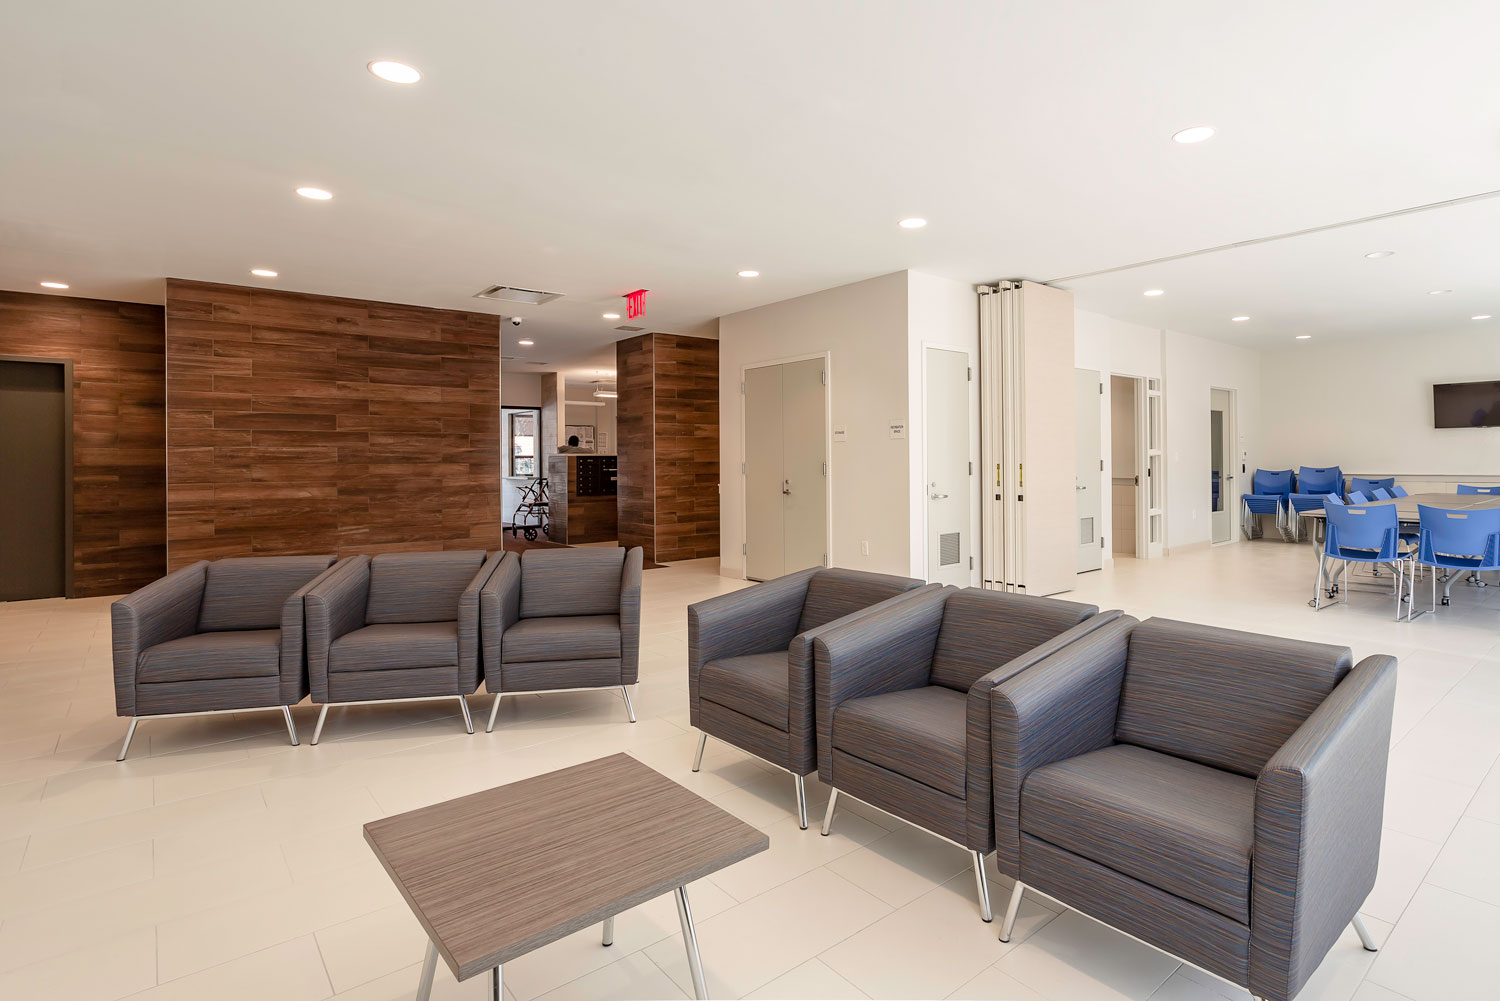 A folding wall separates the lobby lounge and community room at Gates Avenue Residence supportive housing